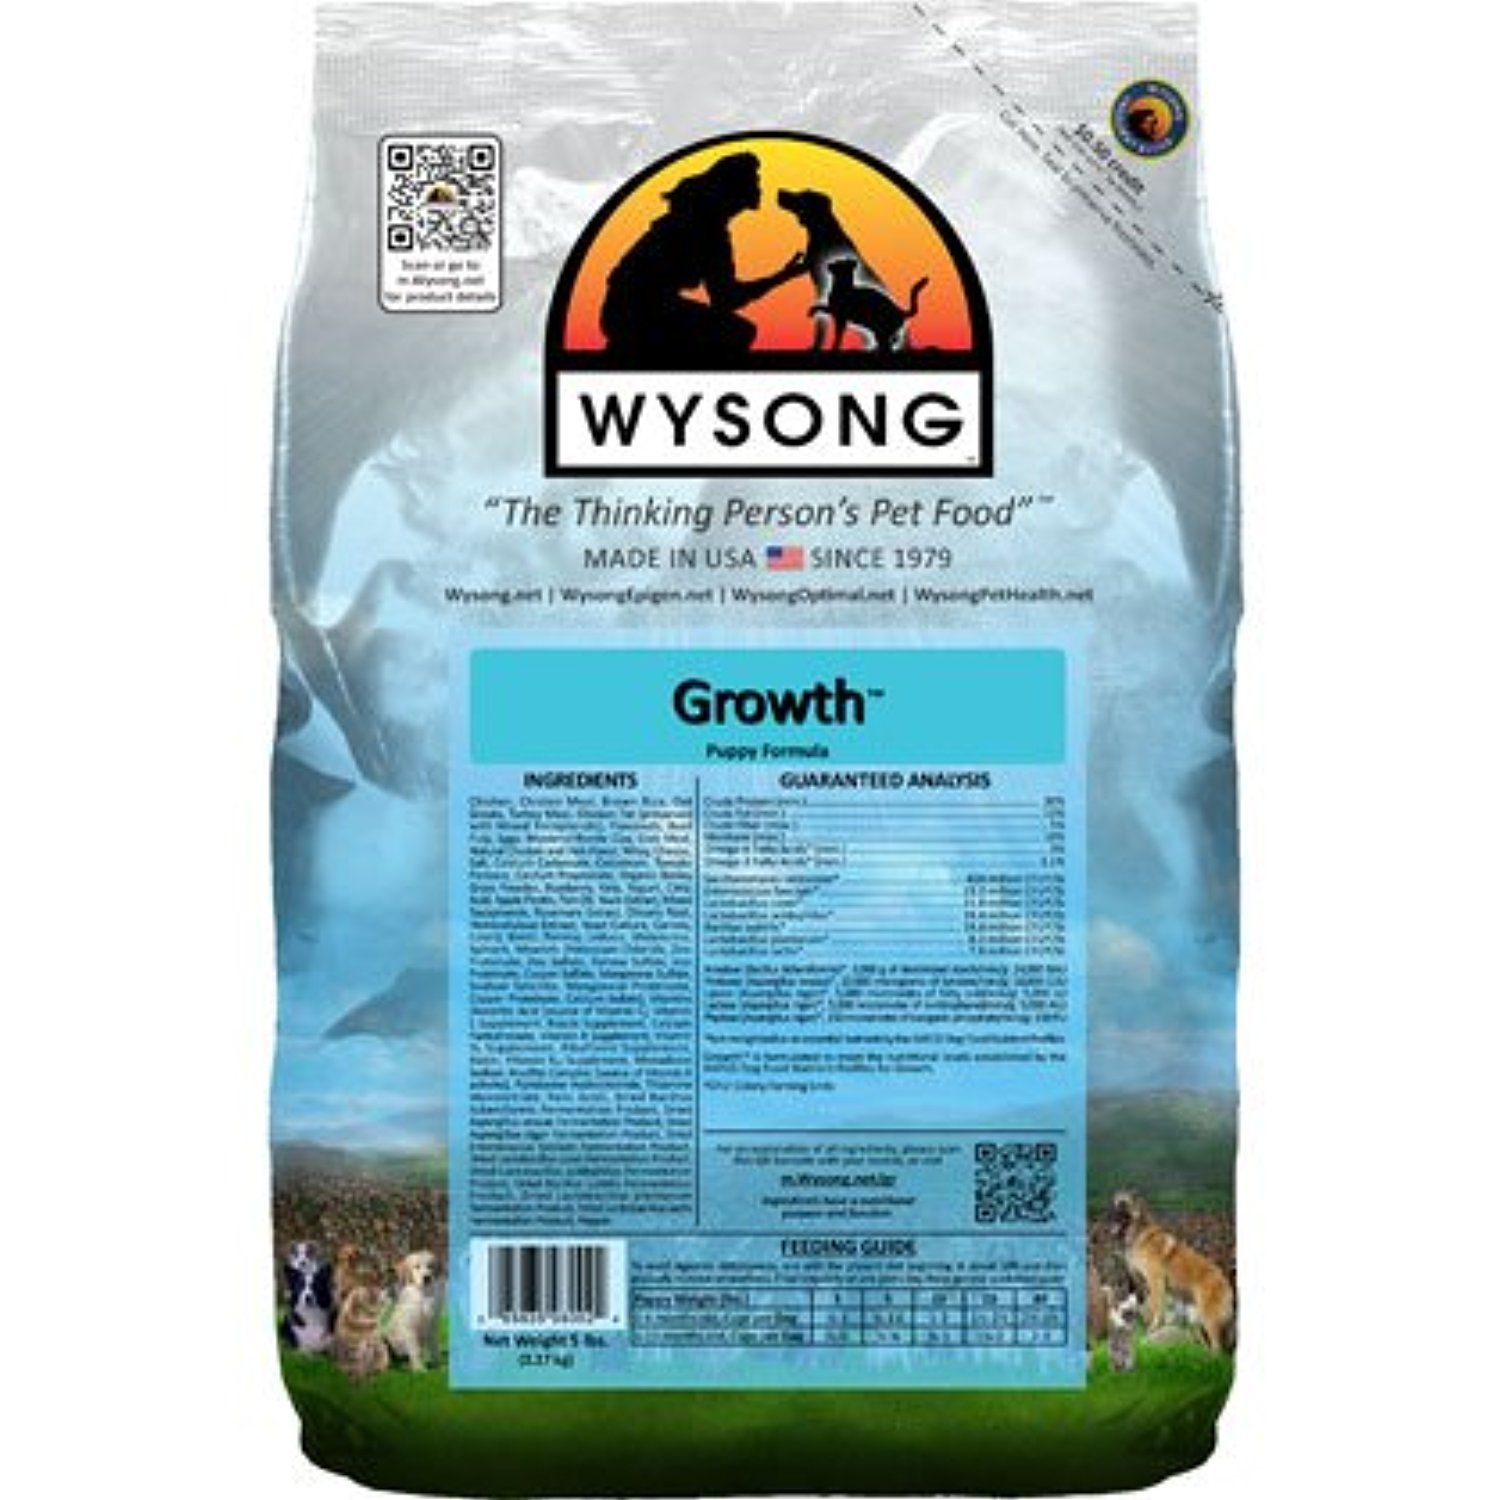 Wysong Growth Dry Dog Food 5lb You could get more